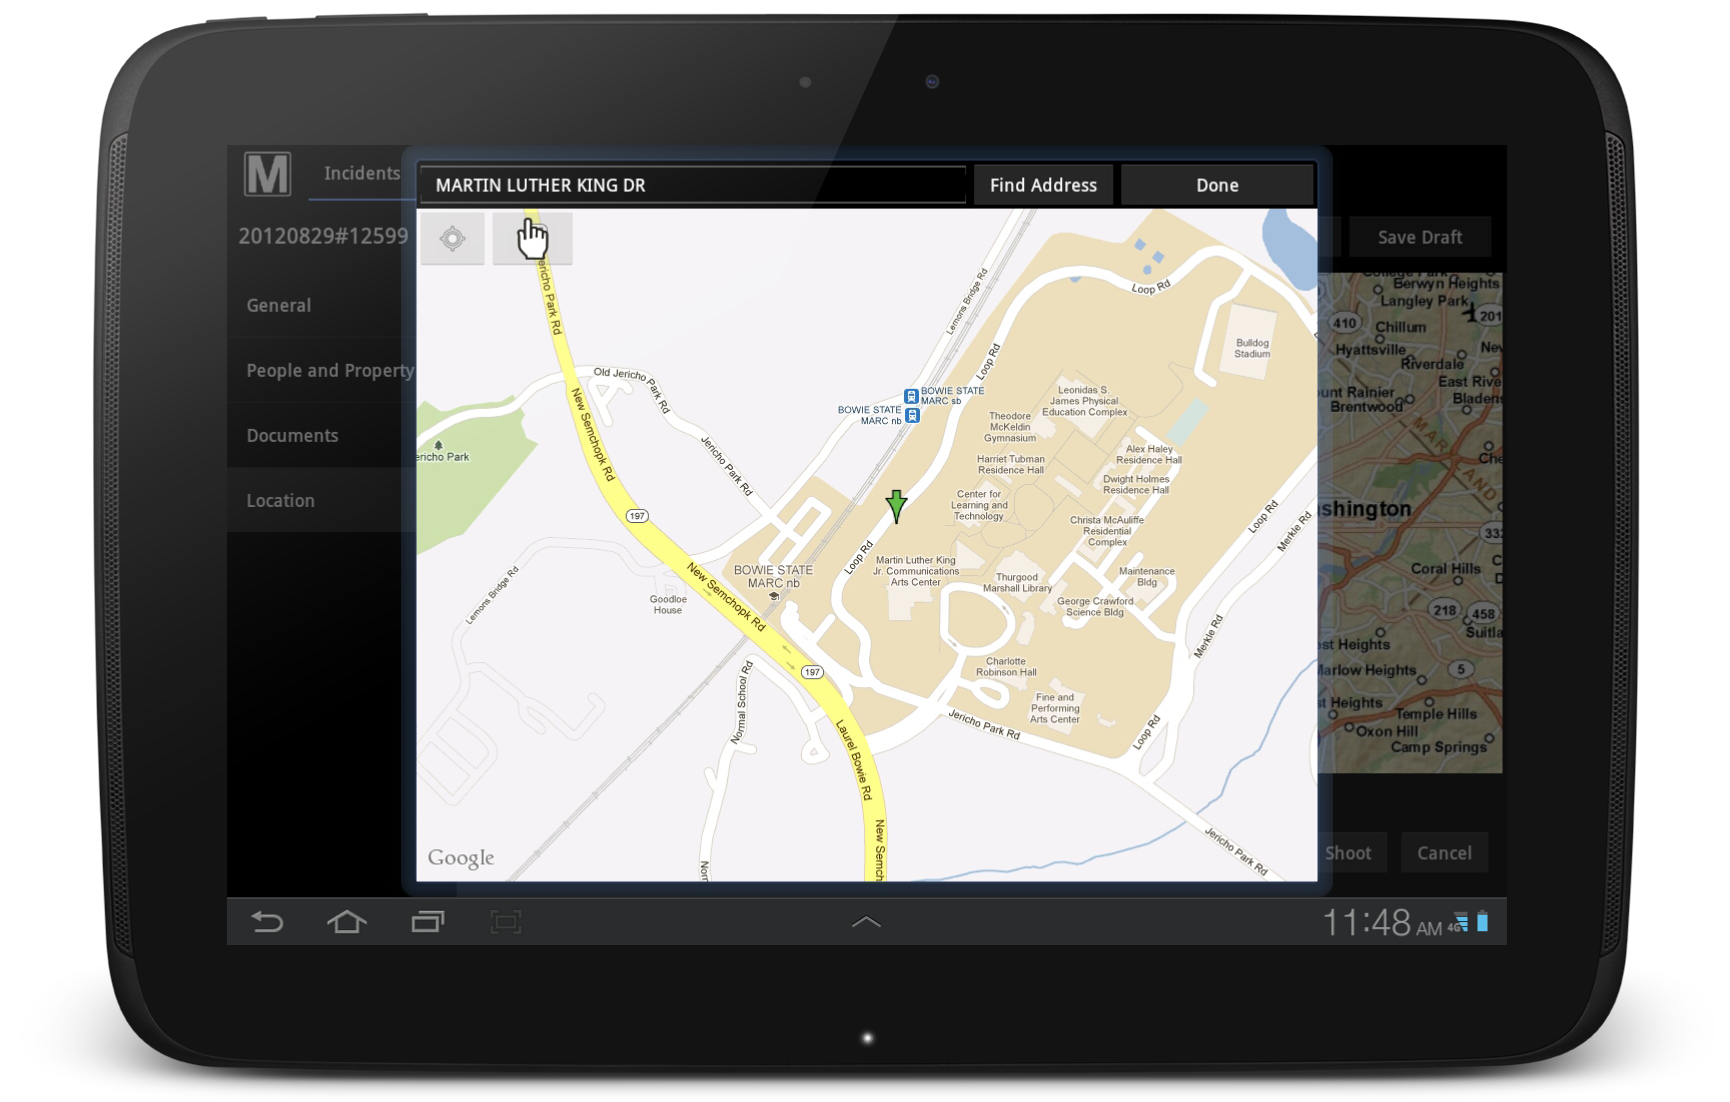 sms-on-tablet